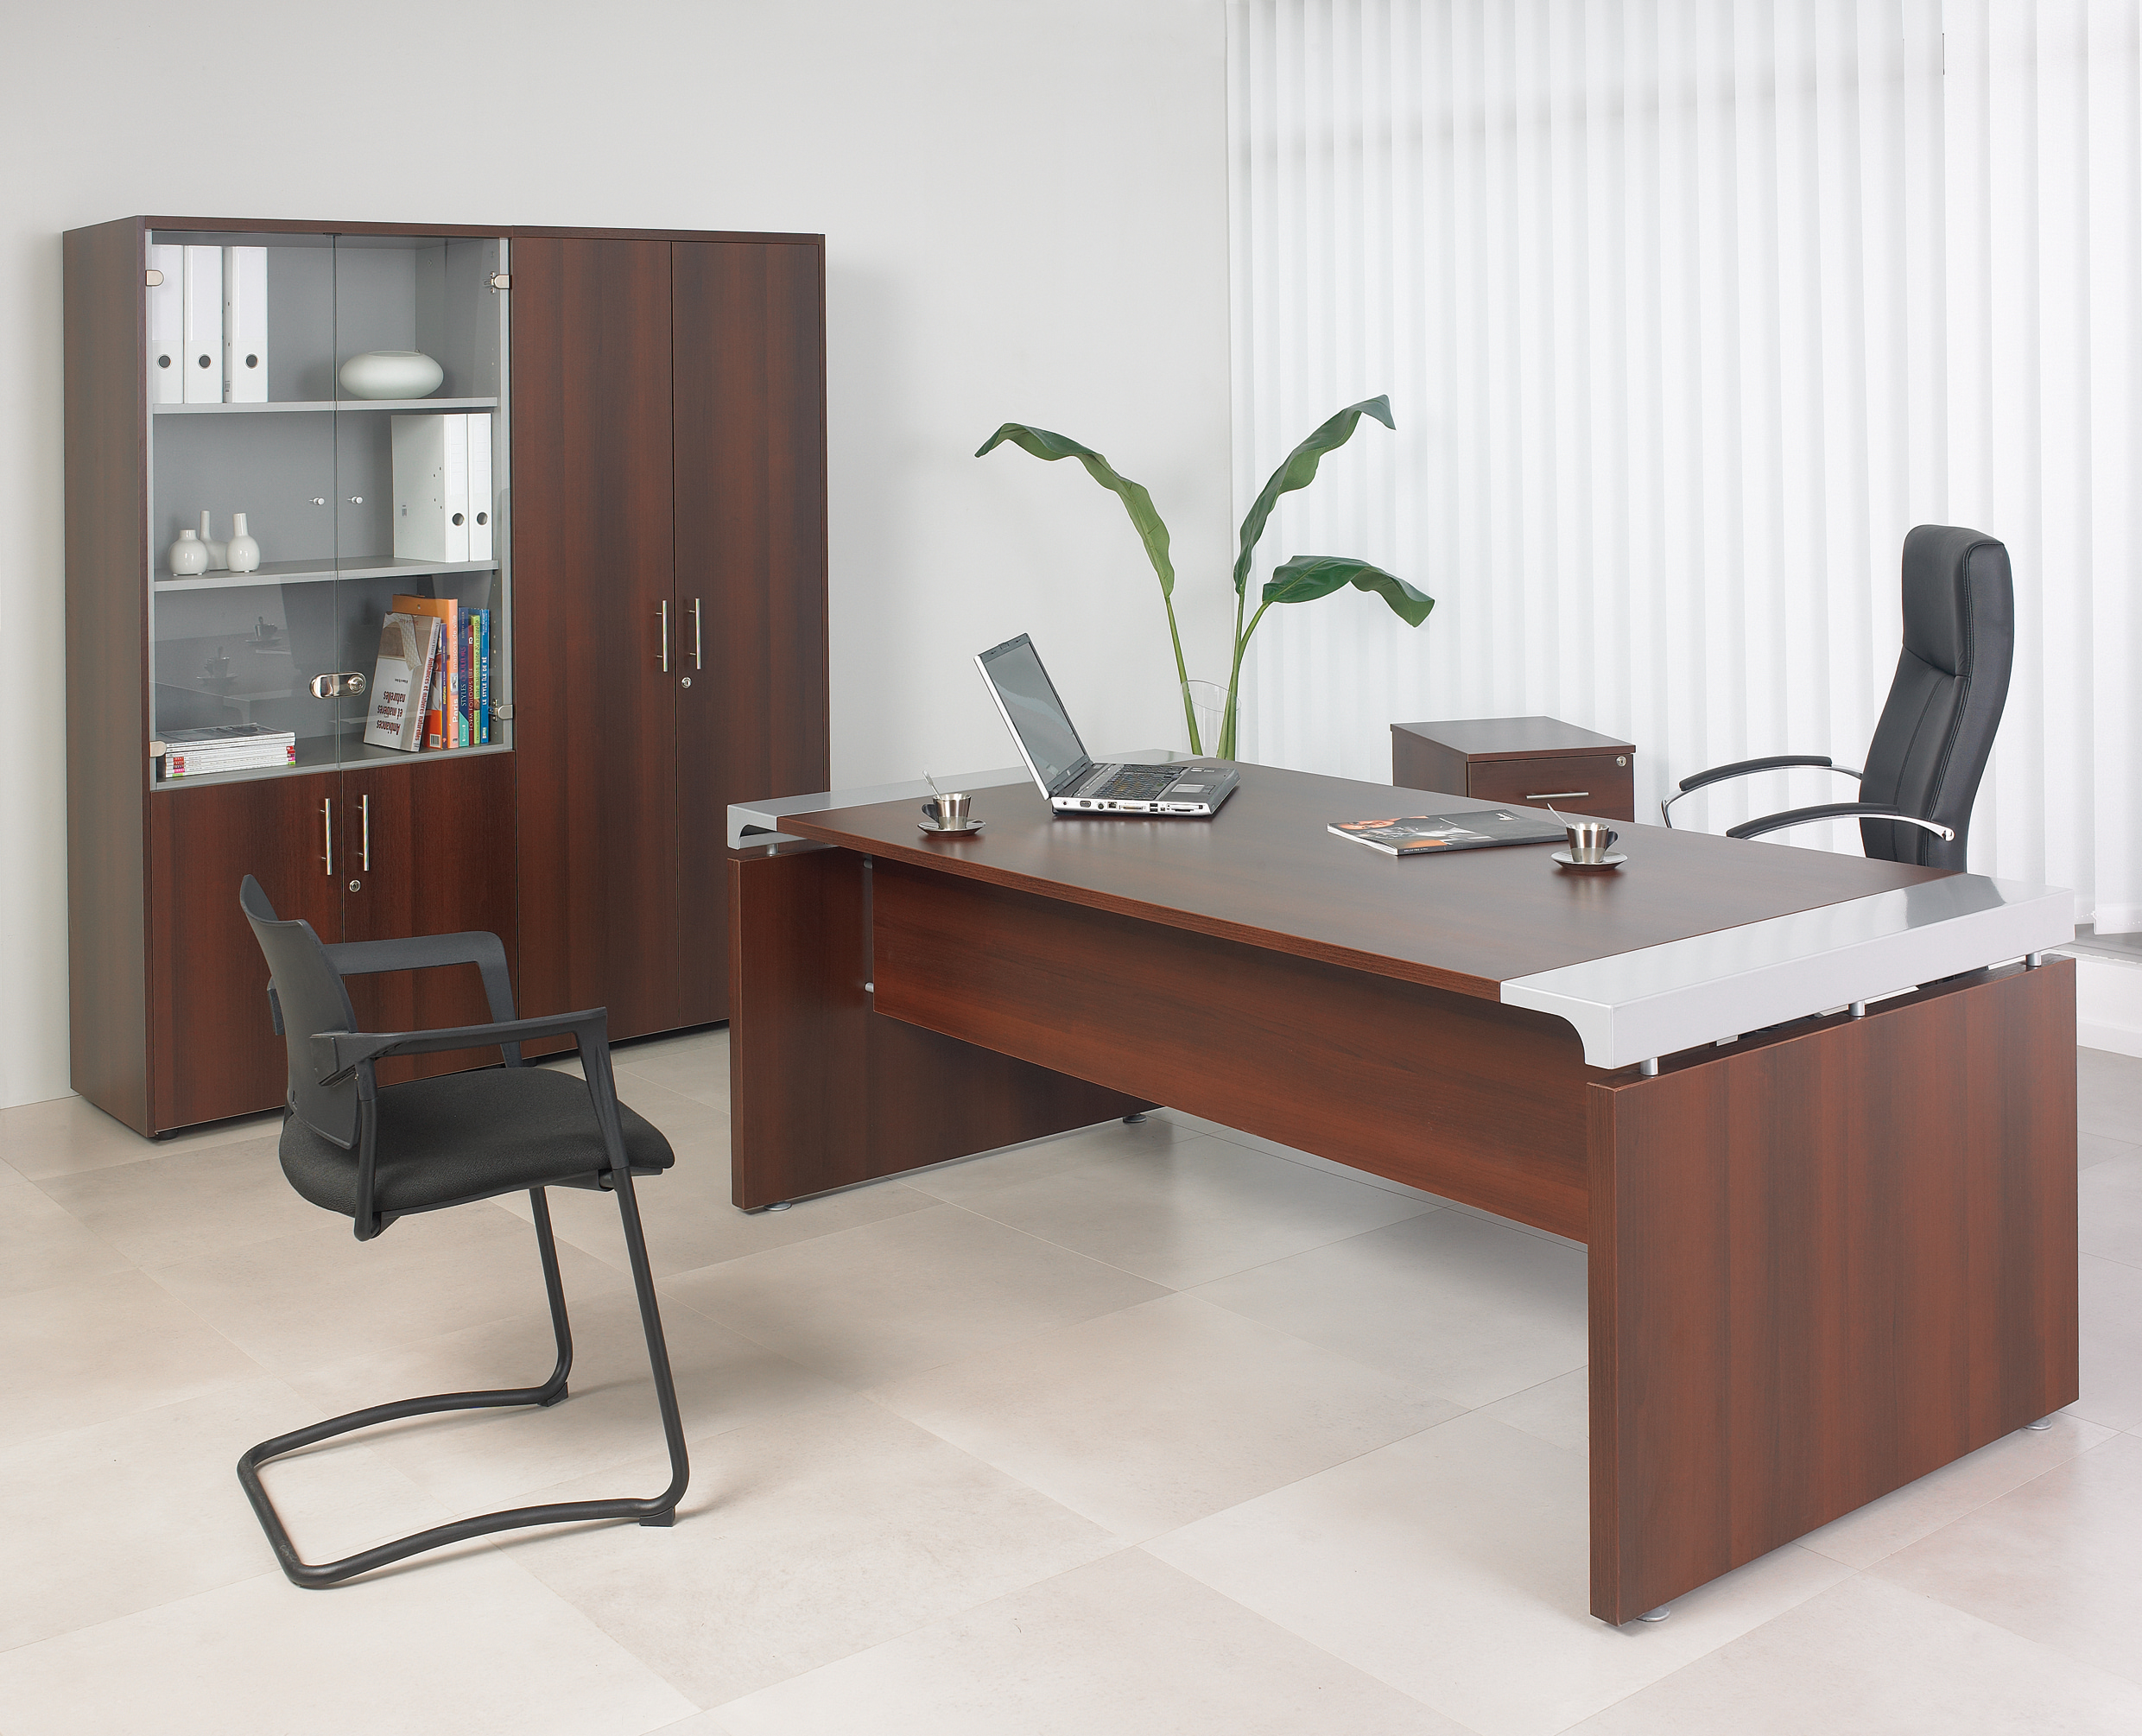 Mobilier de bureau djed agencement for Meuble de bureau professionnel